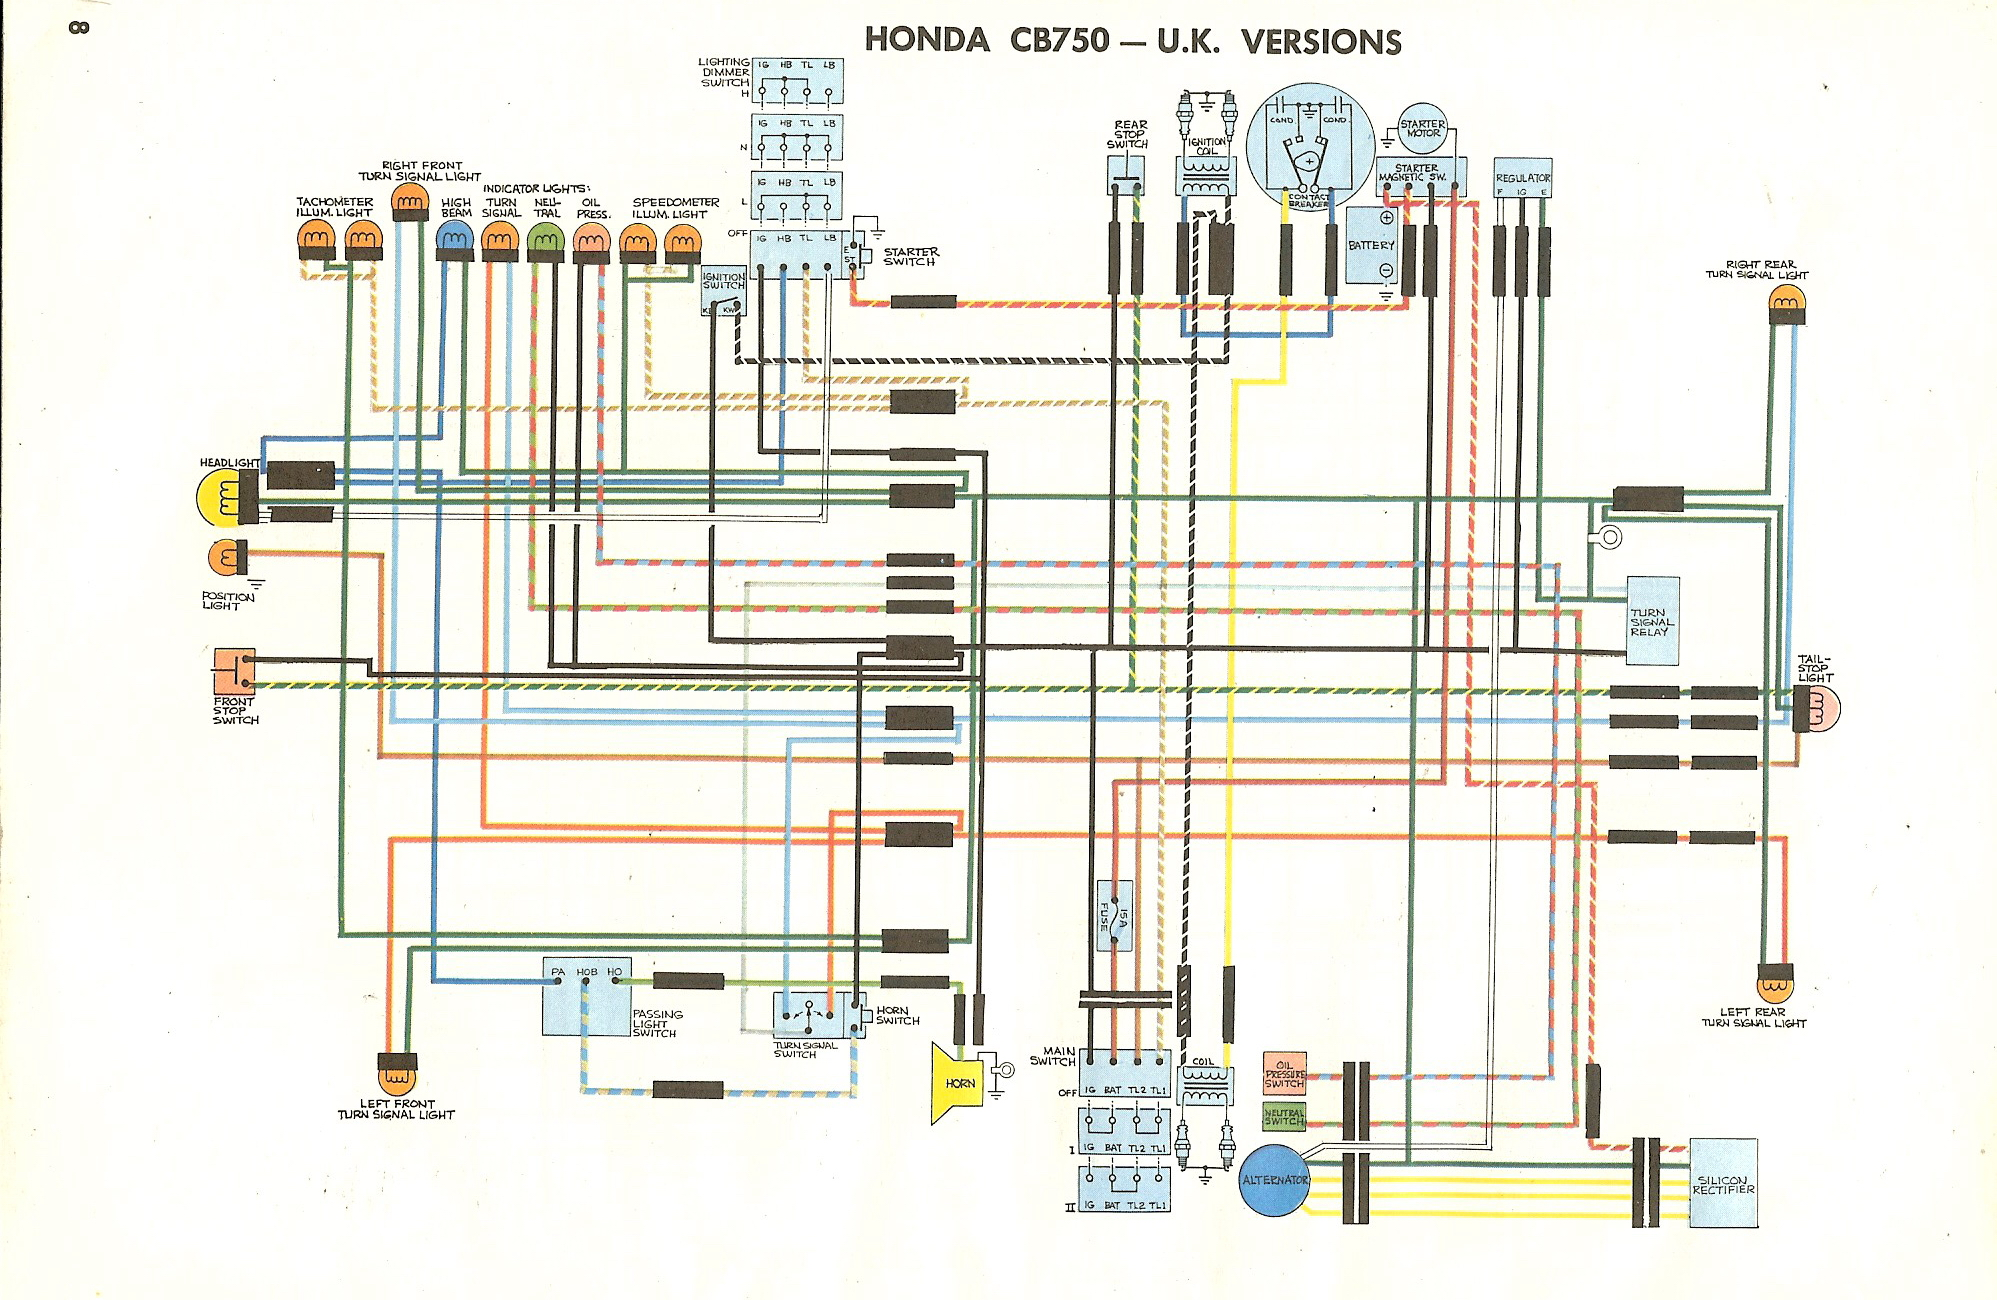 1975 cb750 wiring diagram #15 1971 Honda 750 Four Wiring-Diagram 1975 cb750 wiring diagram